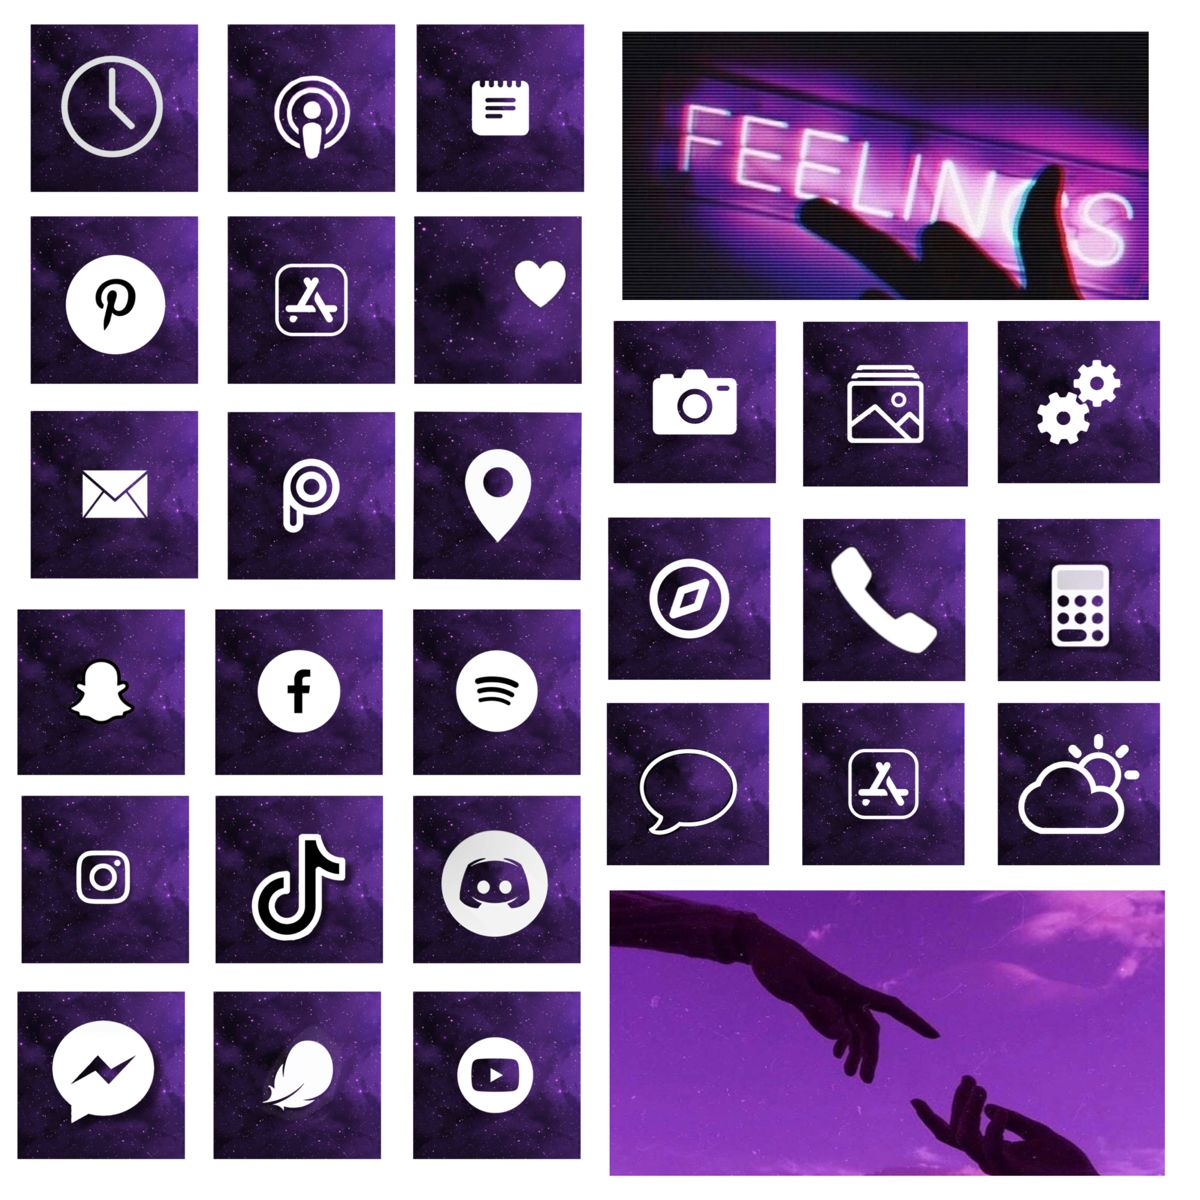 Galaxy Purple Aesthetic App Covers Icons In 2020 Purple Wallpaper Iphone Purple Aesthetic Pretty Wallpaper Iphone